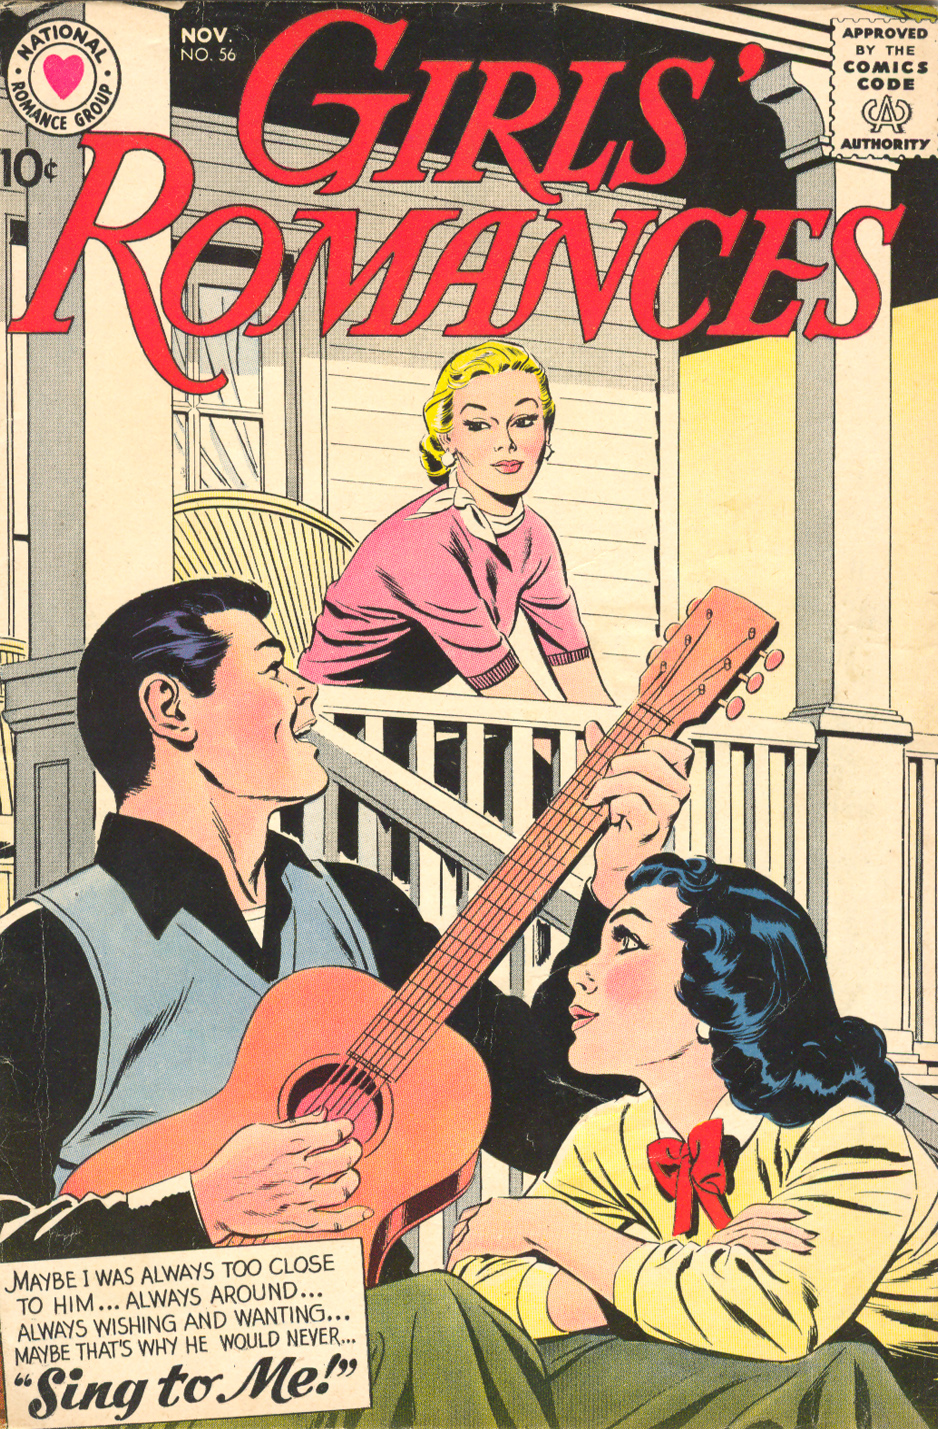 Girls' Romances  #56 (November 1958) Pencils: Bernard Sachs